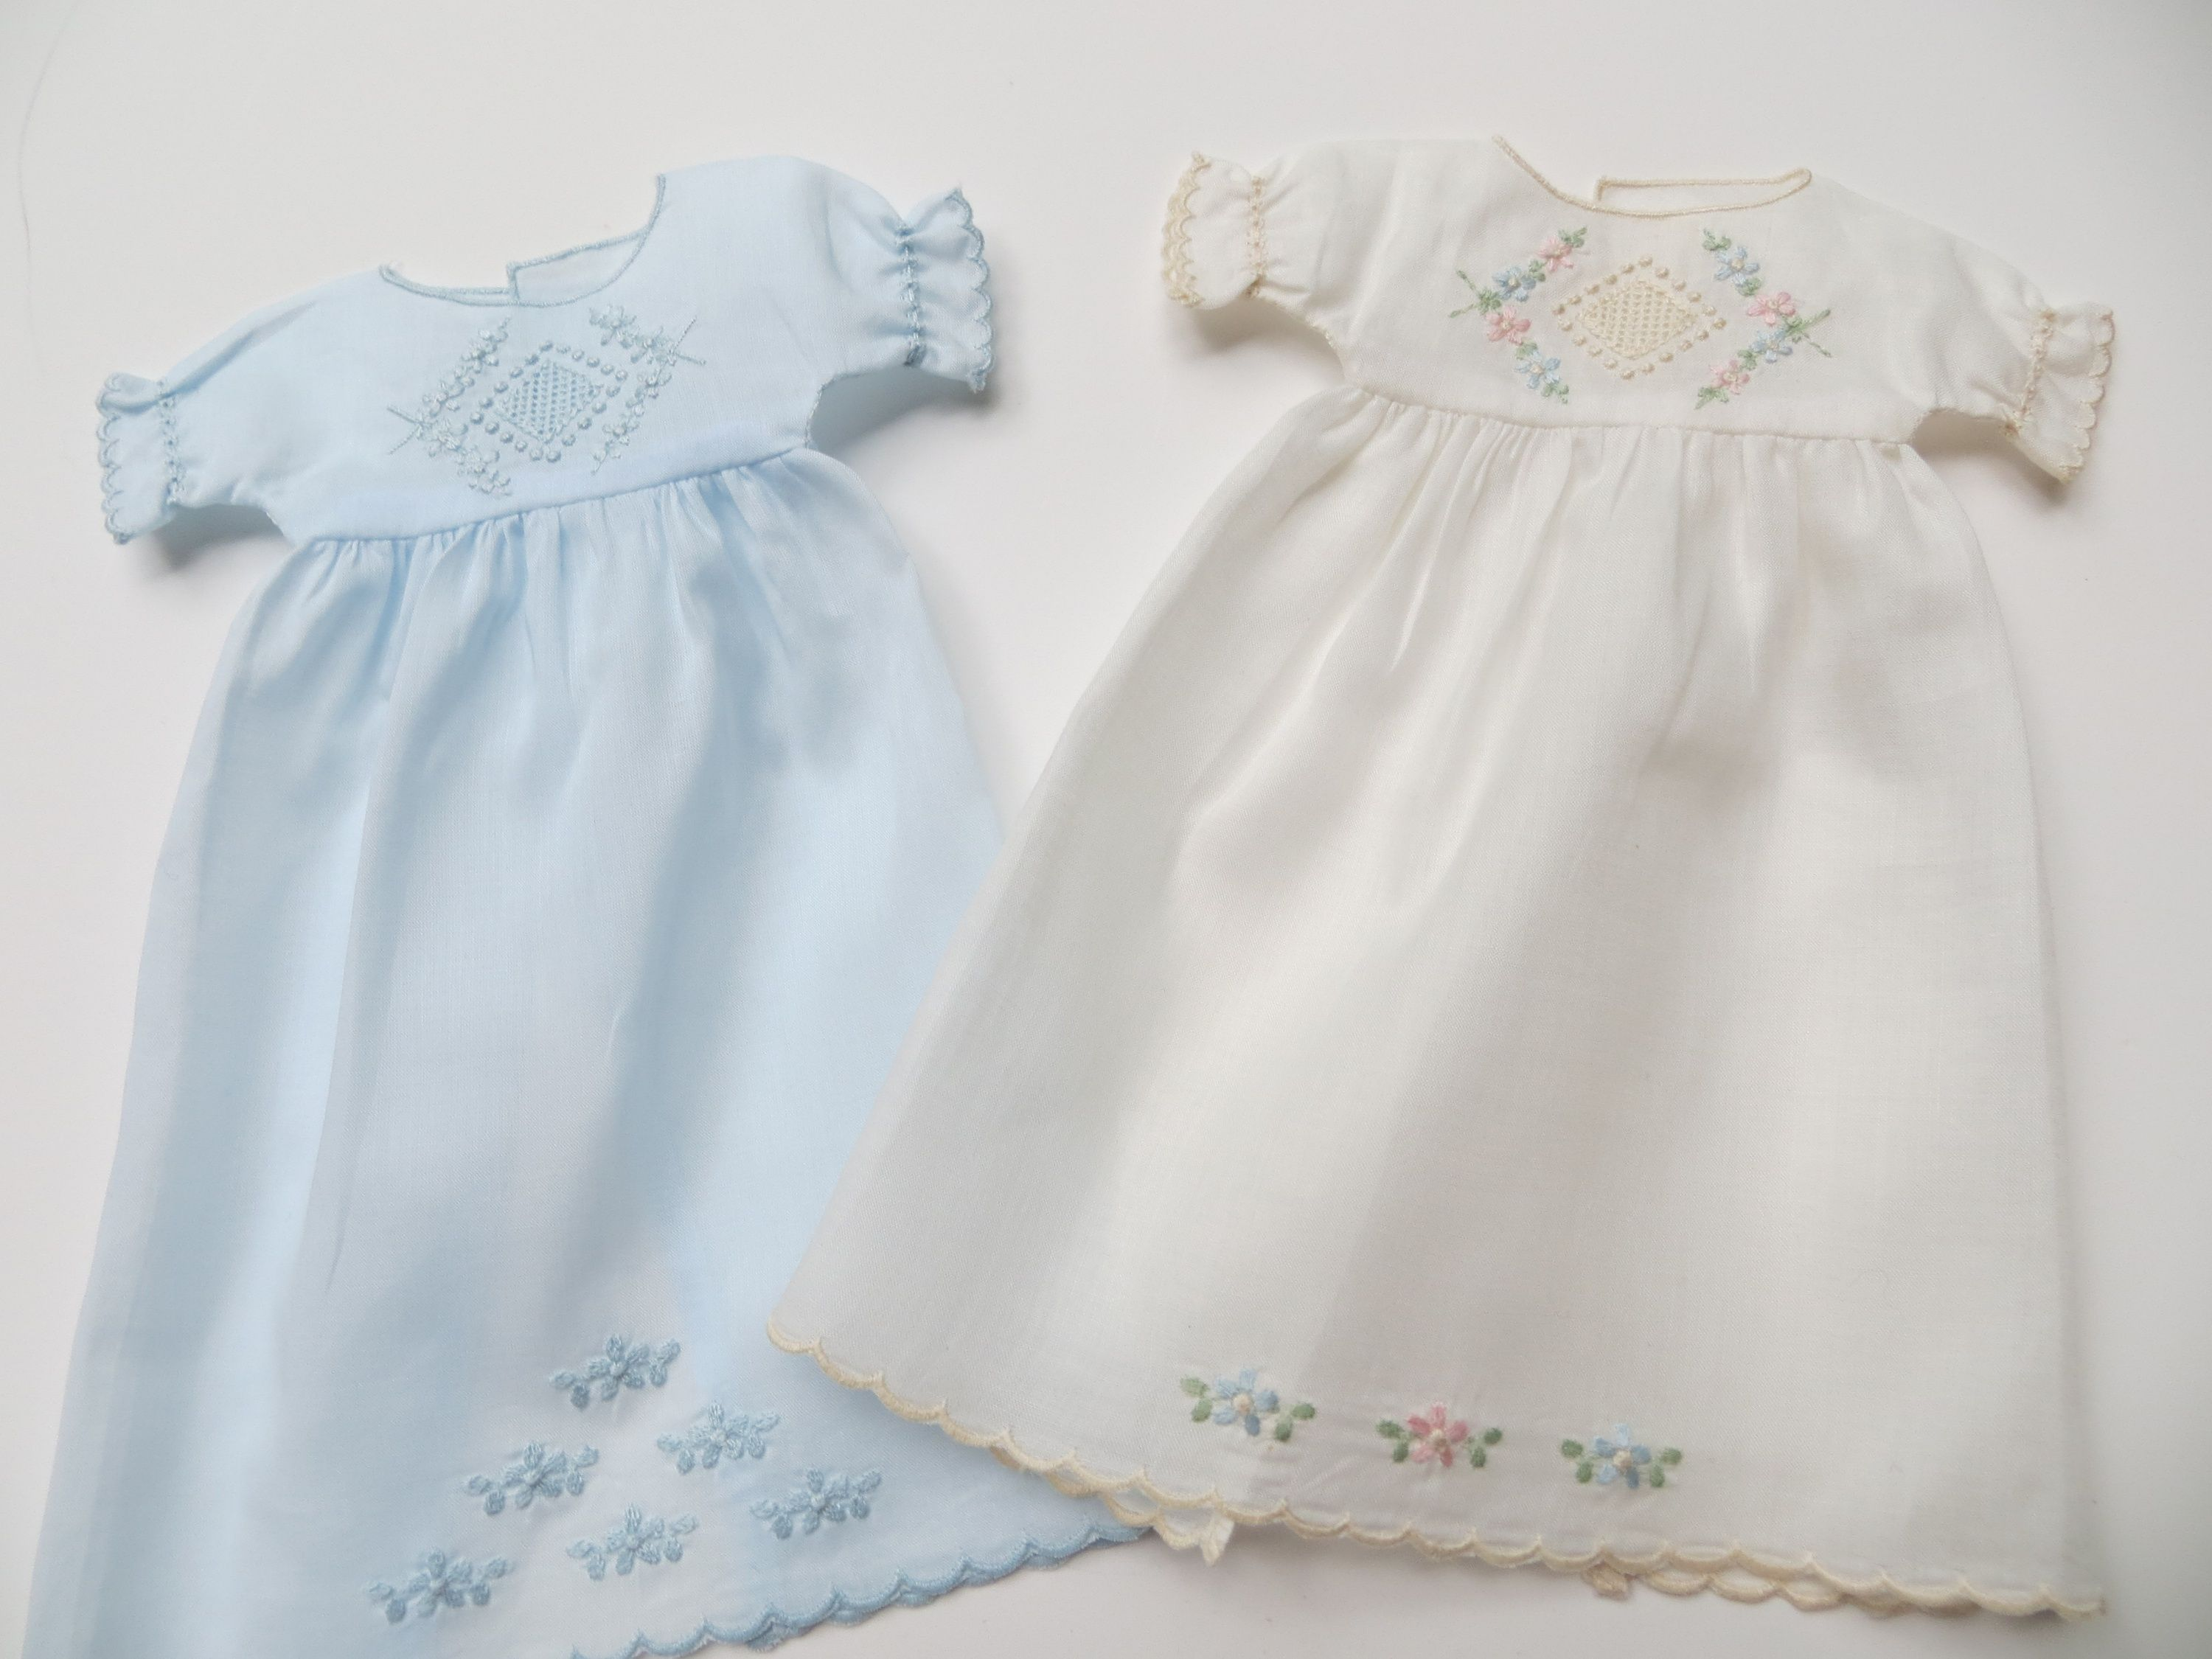 Photo Gallery: Angel Gowns 3 and 5 | Lace | Pinterest | Photo ...